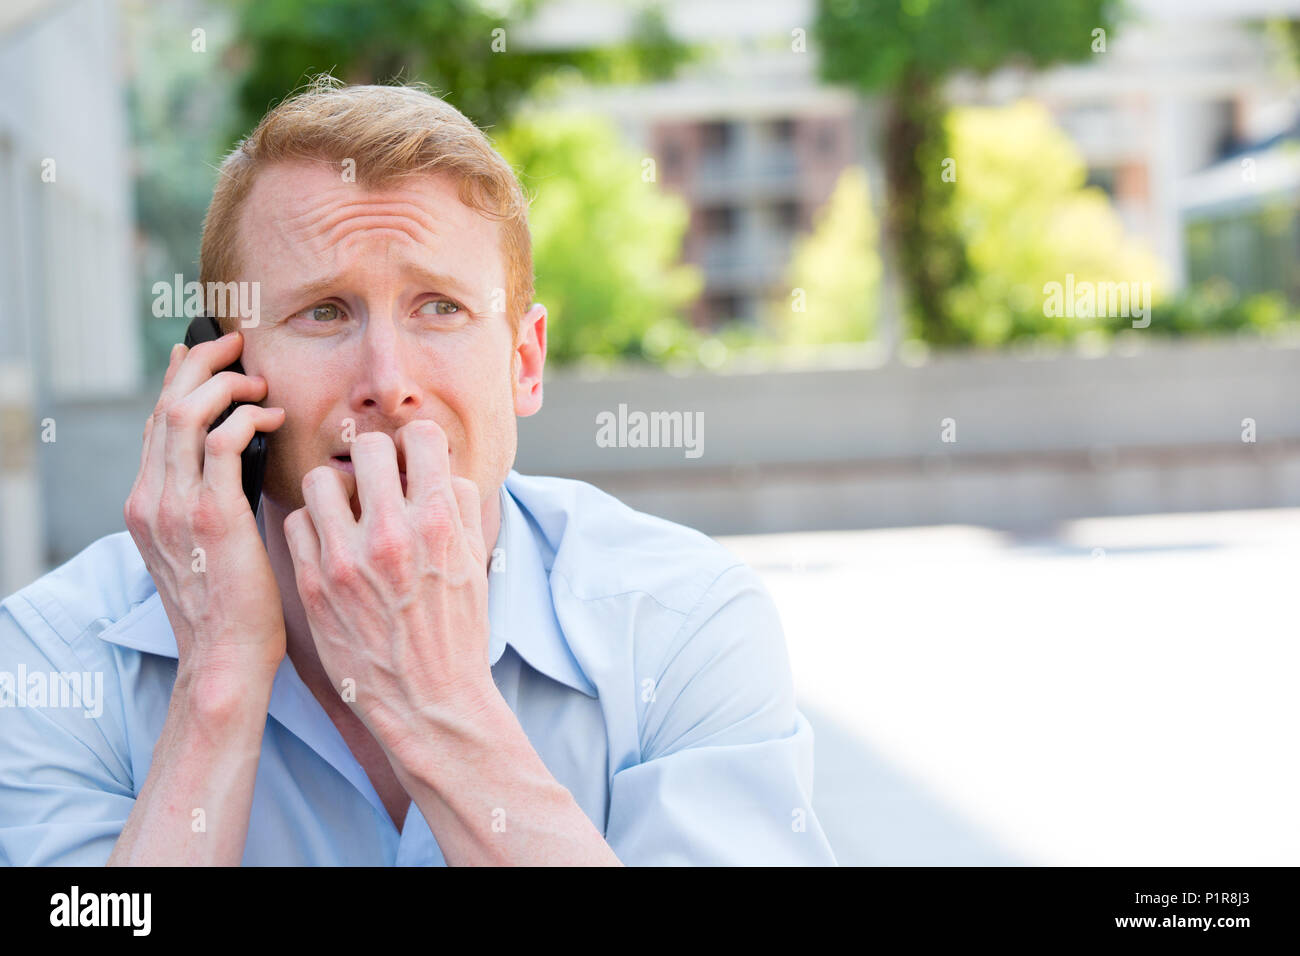 Closeup portrait, worried young man in blue shirt talking on phone to someone, looking gloomy, isolated outdoors outside background - Stock Image